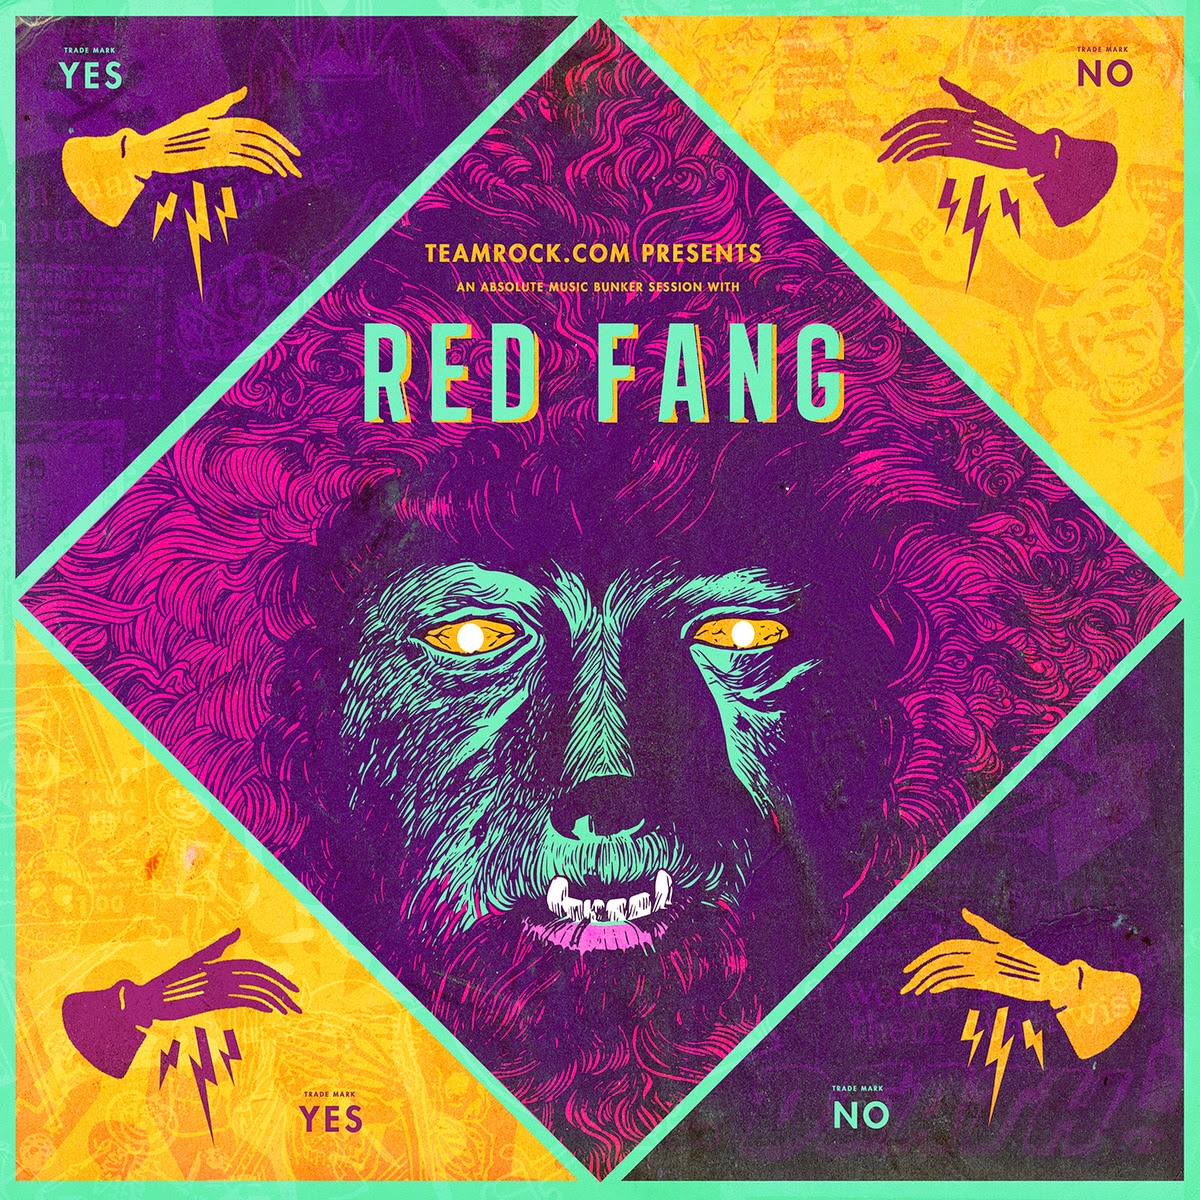 http://redfang.bandcamp.com/album/teamrock-com-presents-an-absolute-music-bunker-session-with-red-fang